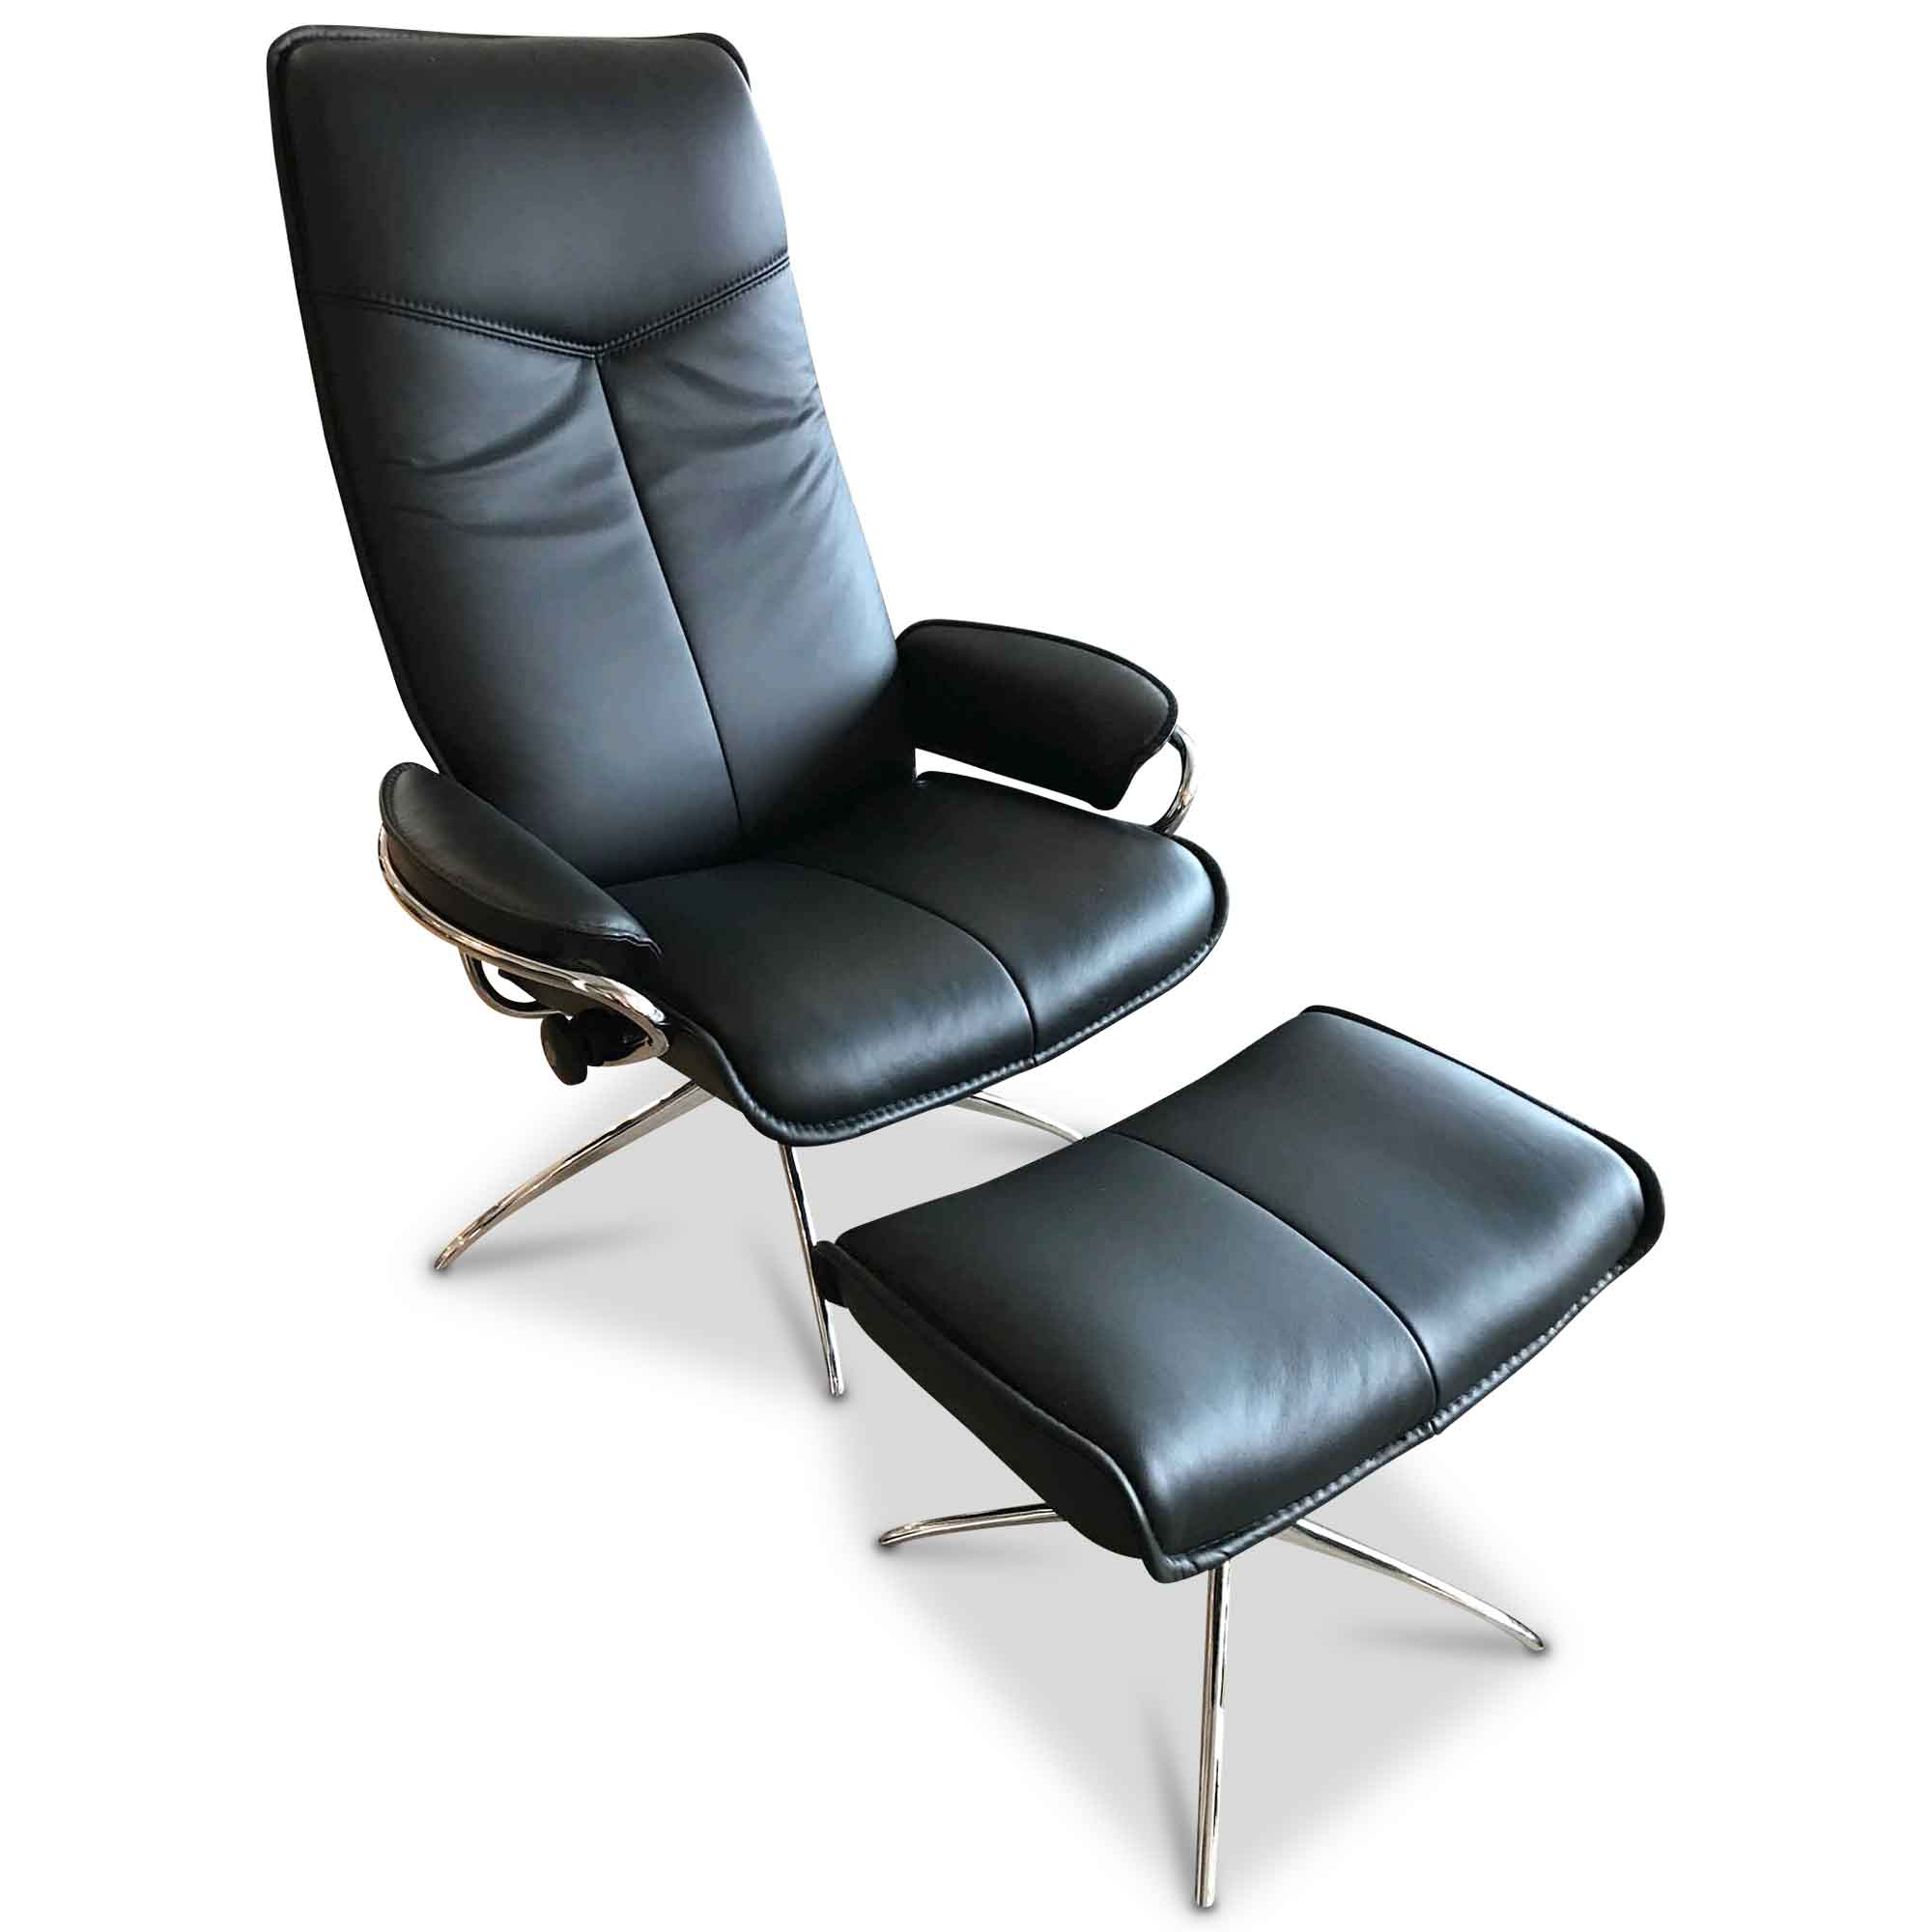 stressless designer sessel city mit hocker leder metall schwarz ebay. Black Bedroom Furniture Sets. Home Design Ideas